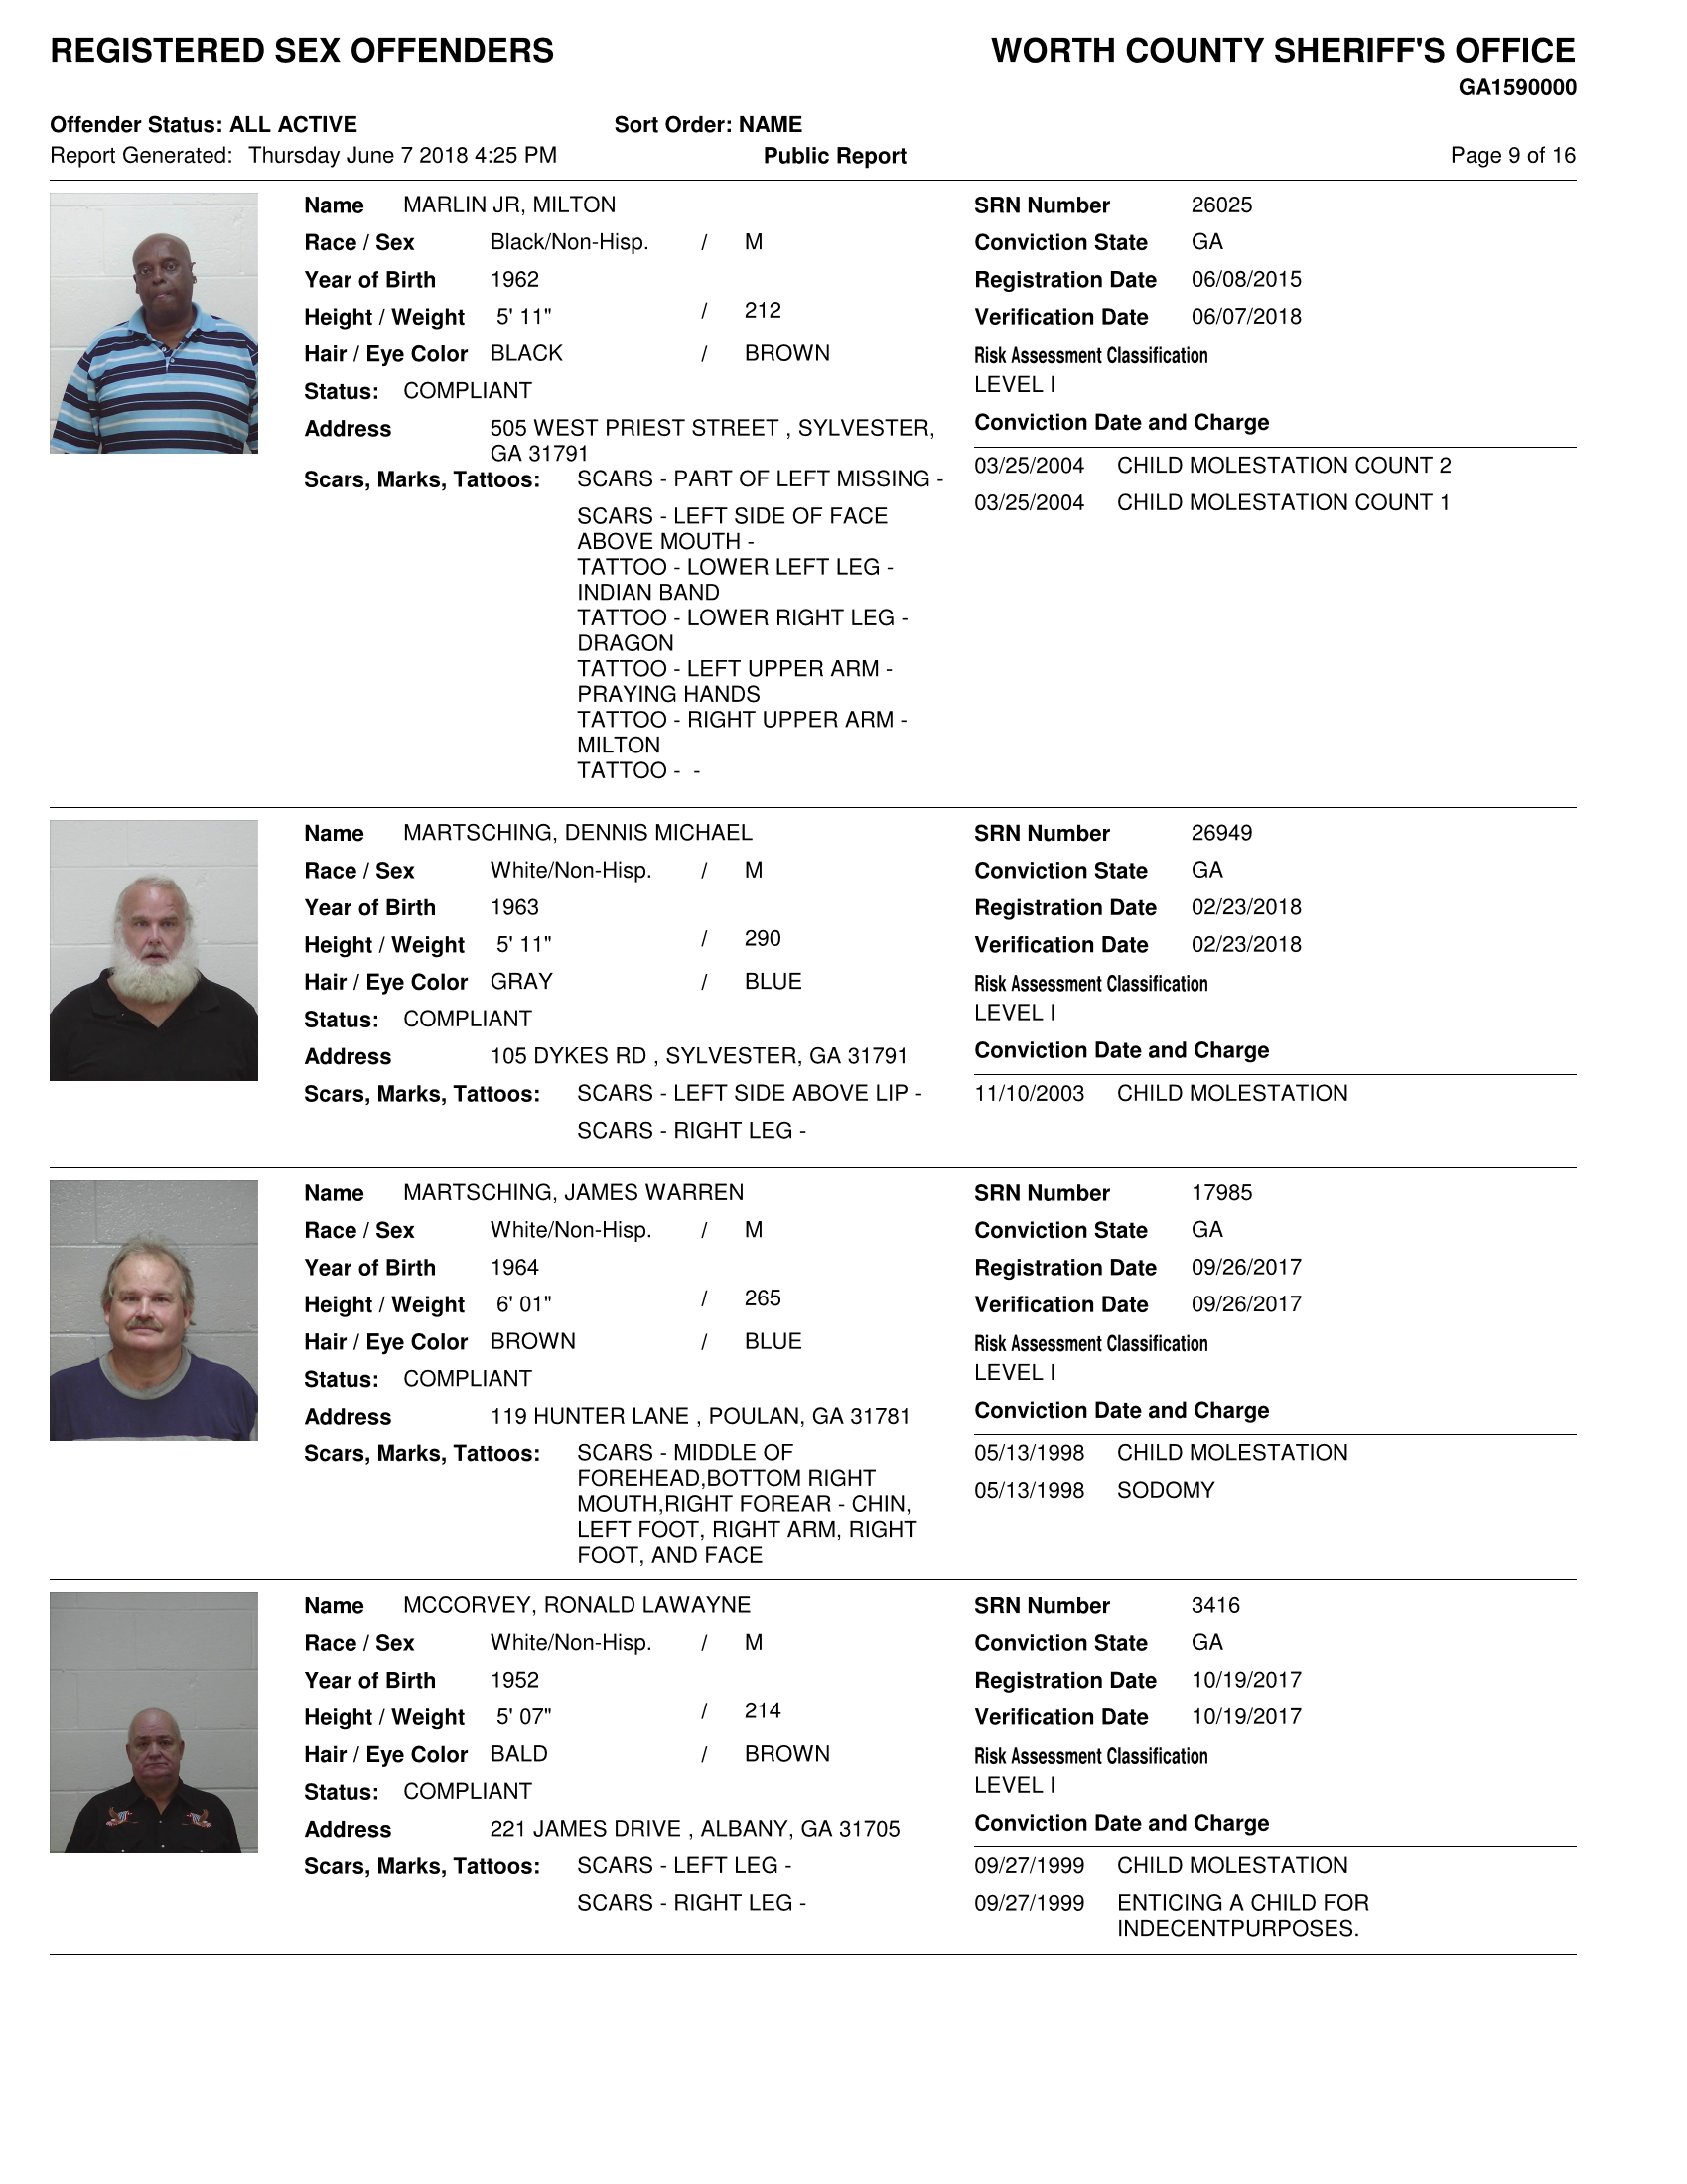 forsyth county sex offenders list